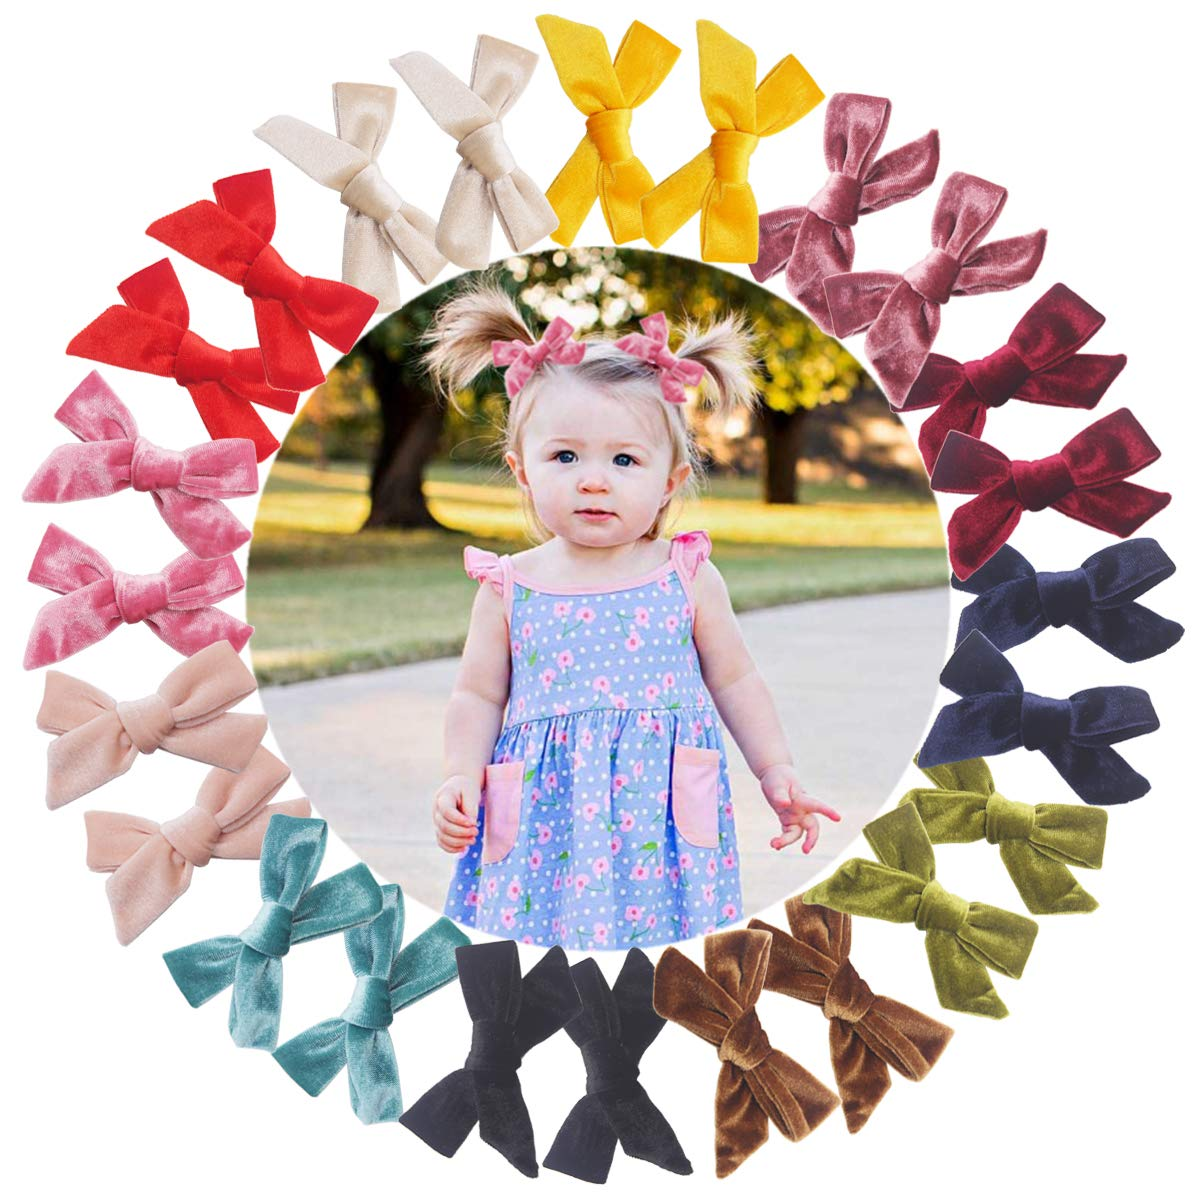 24PCS/12Pairs Velvet Hair Bows Clips Baby Girls 4Inch Hair Bows Alligator Hair Clips Fully Lined Hair Accessories for Toddlers Little Girls School Girls Teens